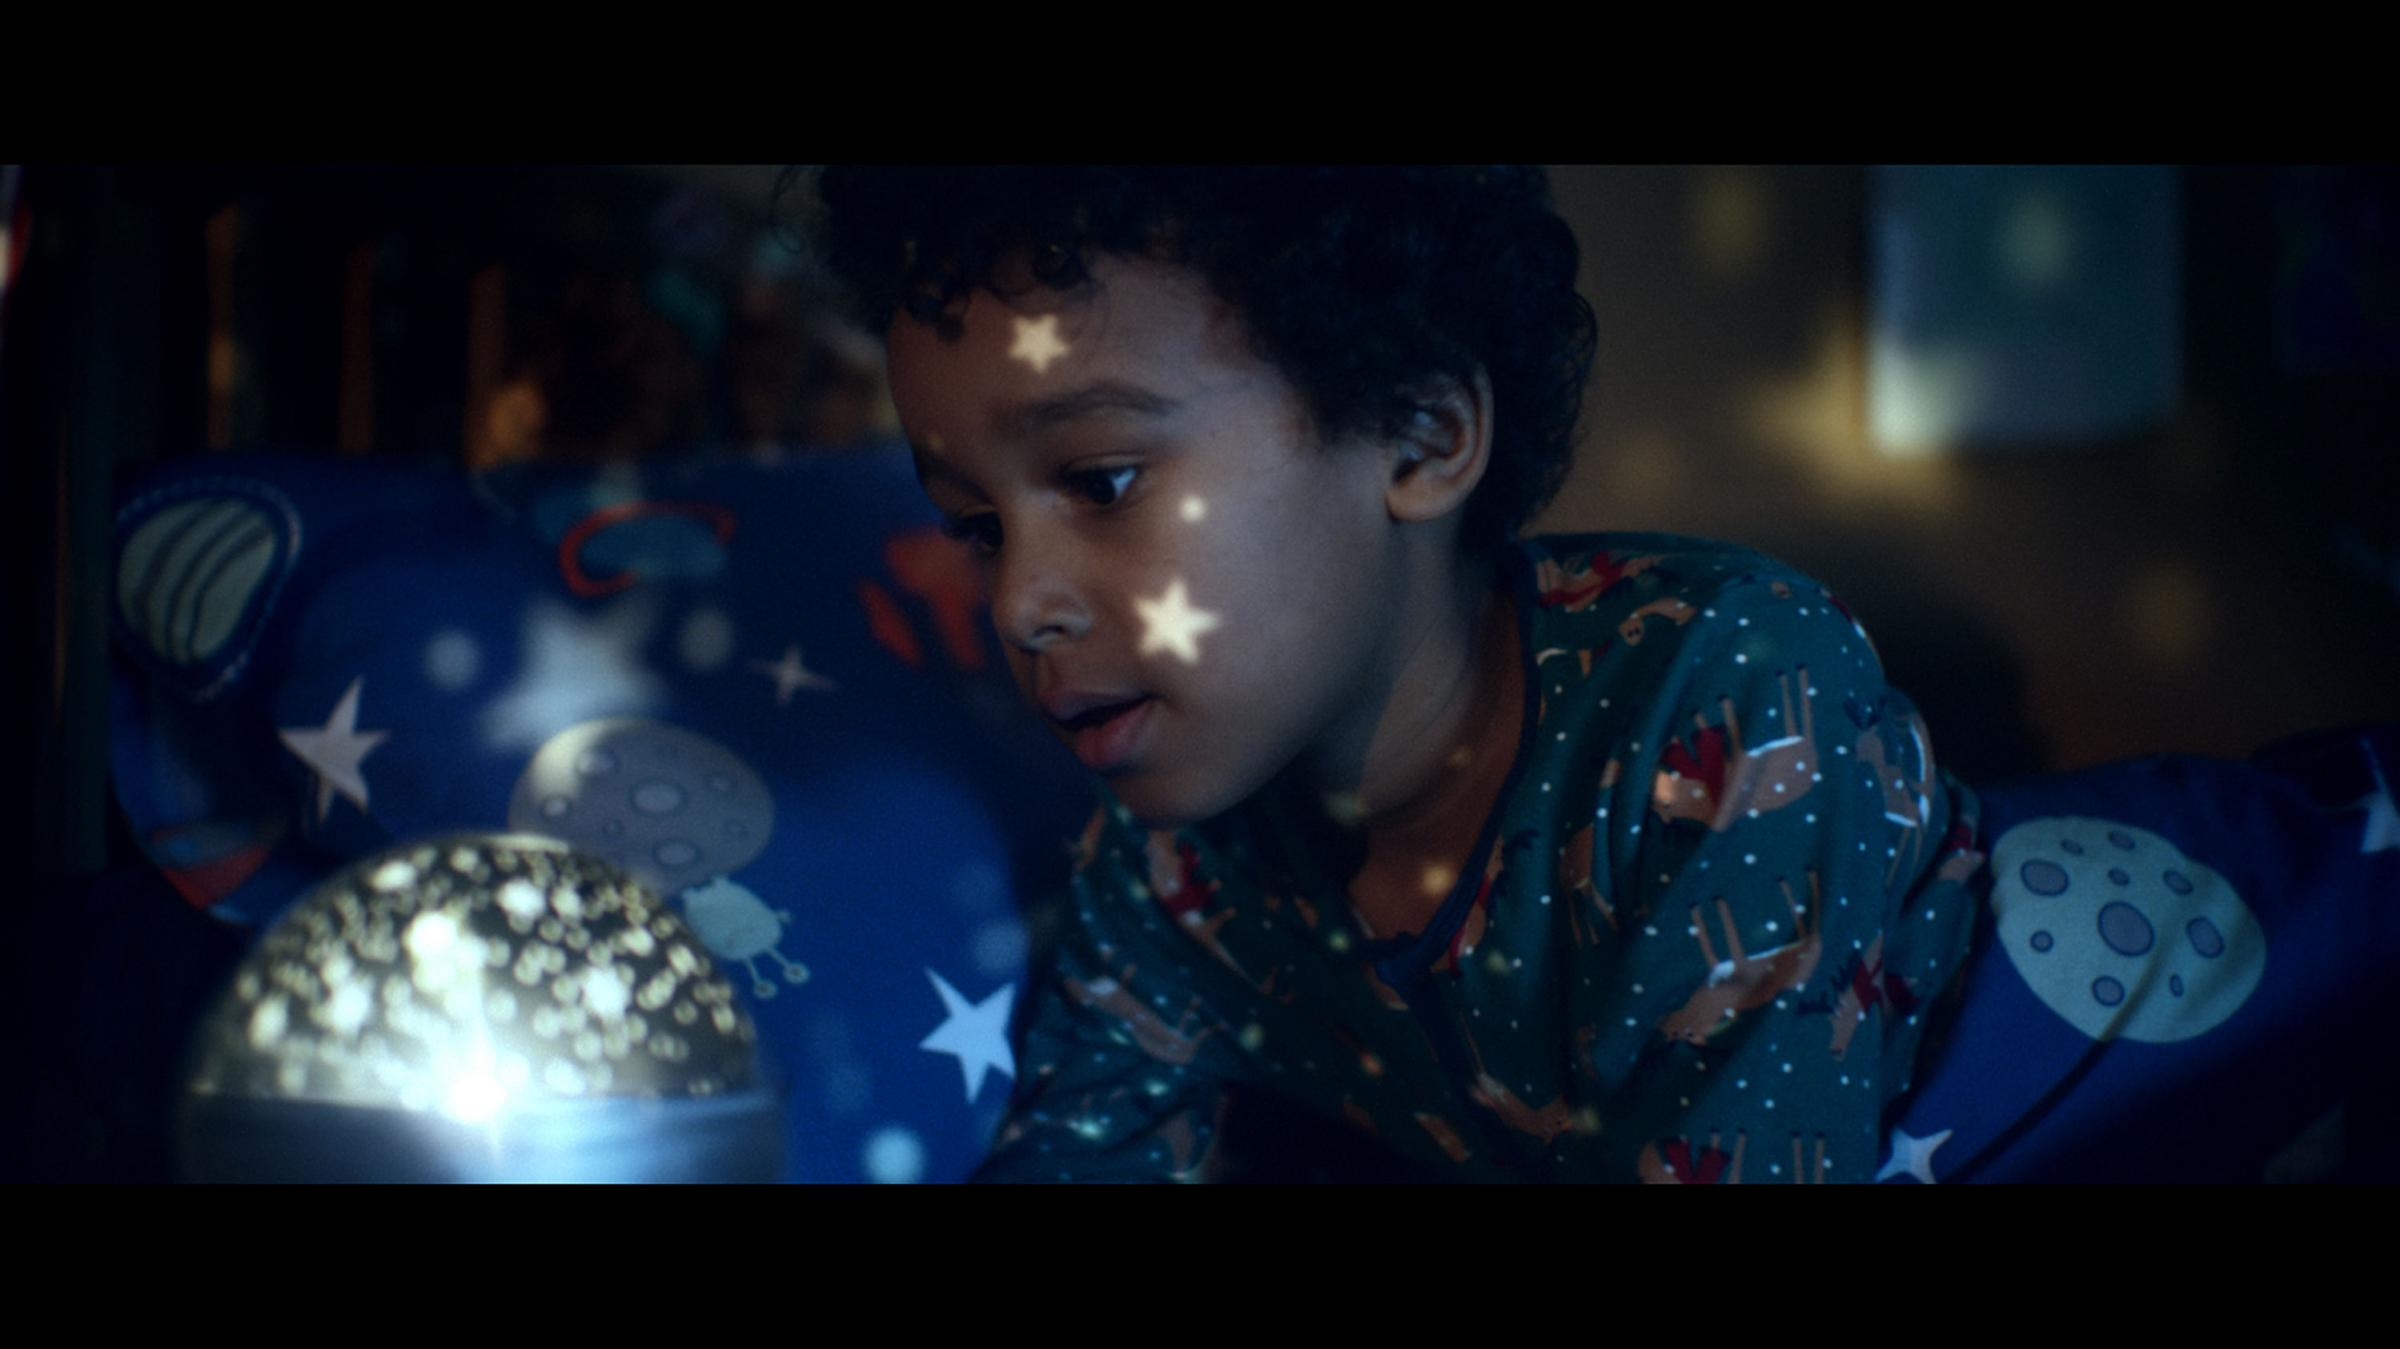 The eagerly awaited John Lewis Christmas ad is now here